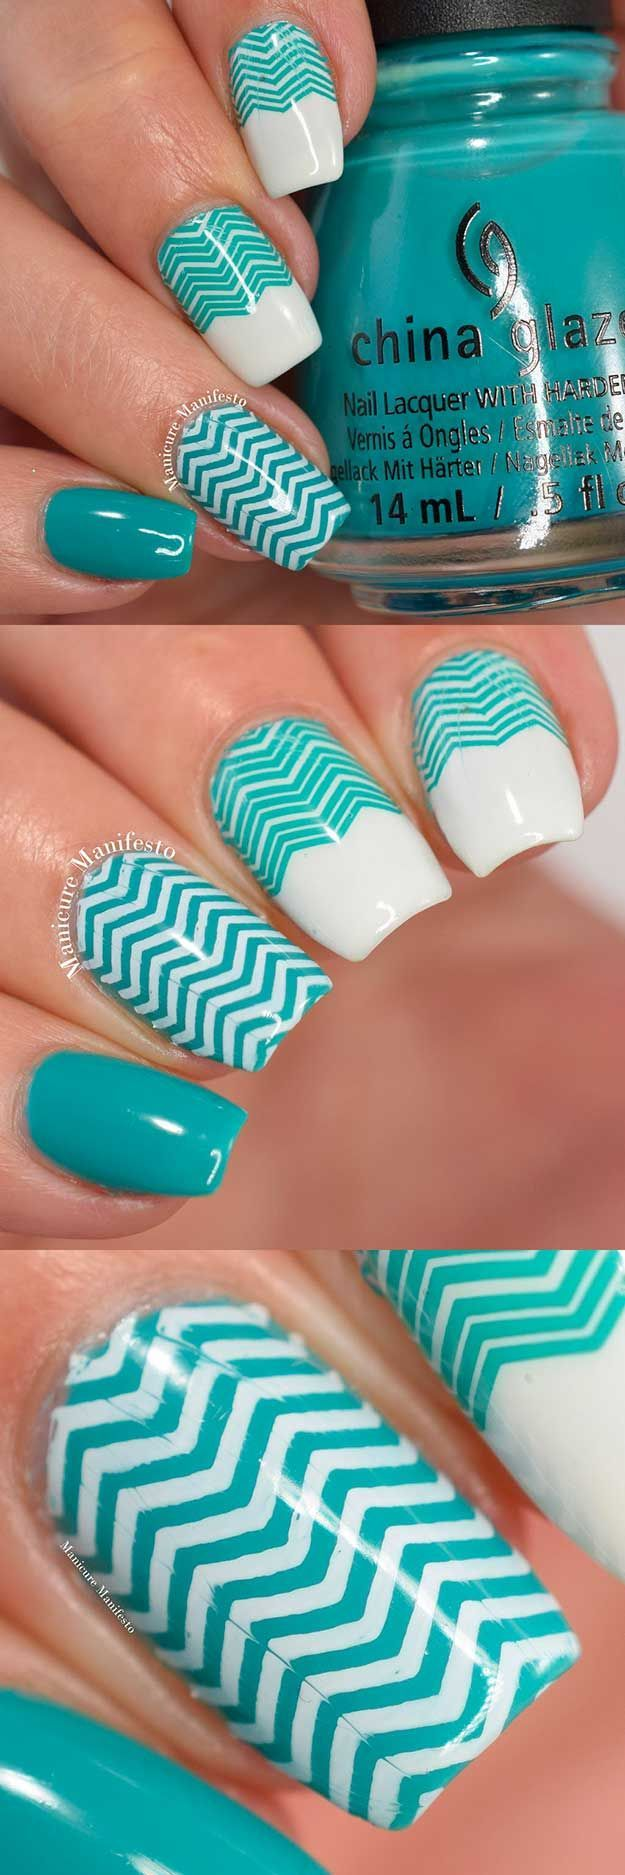 Chevron Nail Art Ideas - White & Teal Chevron Nail Art - Best Chevron Nail Art Designs and Ideas On Pinterest, Chevron Nail Designs Step By Step, Chevron French Nails, Gel Nails, Chevron Tutorial For Toes, DIY Nailart For French Tips, Designs For Manicures, Negative Space Uses, and How To Do Chevron Polka Dots. Simple, Awesome, and Gorgeous Chevron Nail Art Ideas You Will Love With Amazing Colors Like Coral, Silver, And Grey. Try Chevon With Stripes For A Fun Look On Valentines Day Or For Su